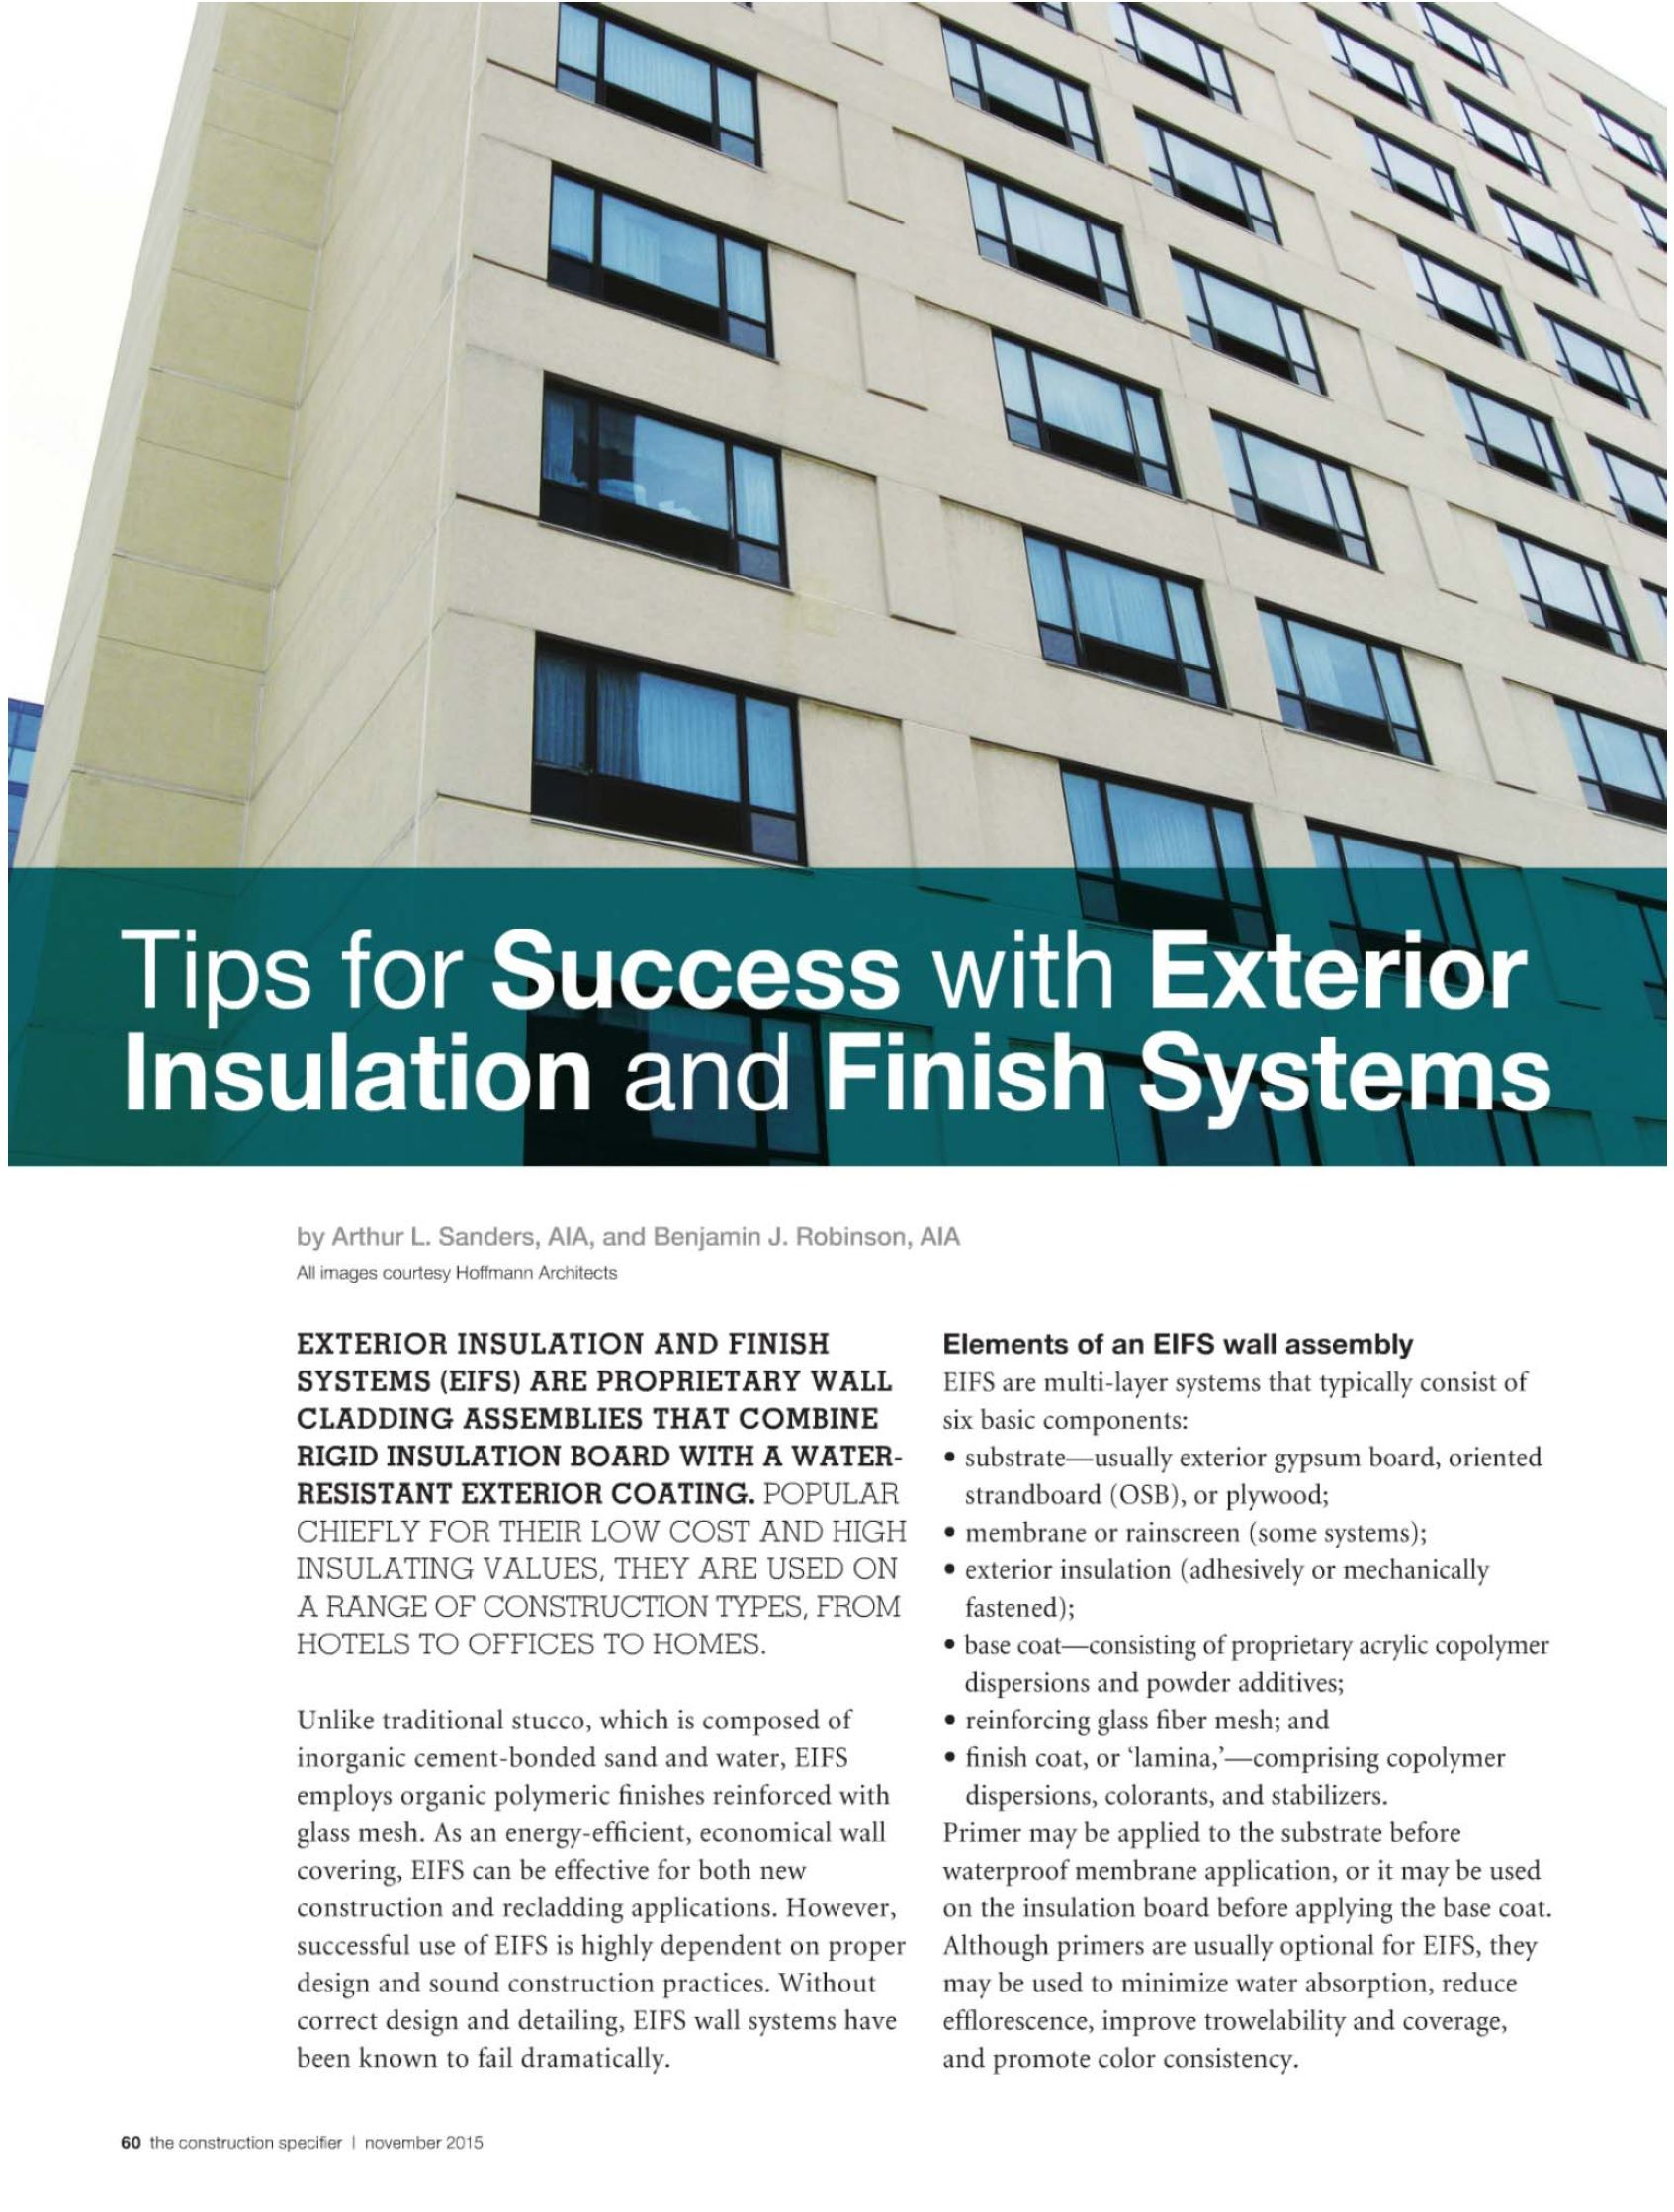 Rigid Insulation Types Tips For Success With Exterior Insulation And Finish Systems Eifs